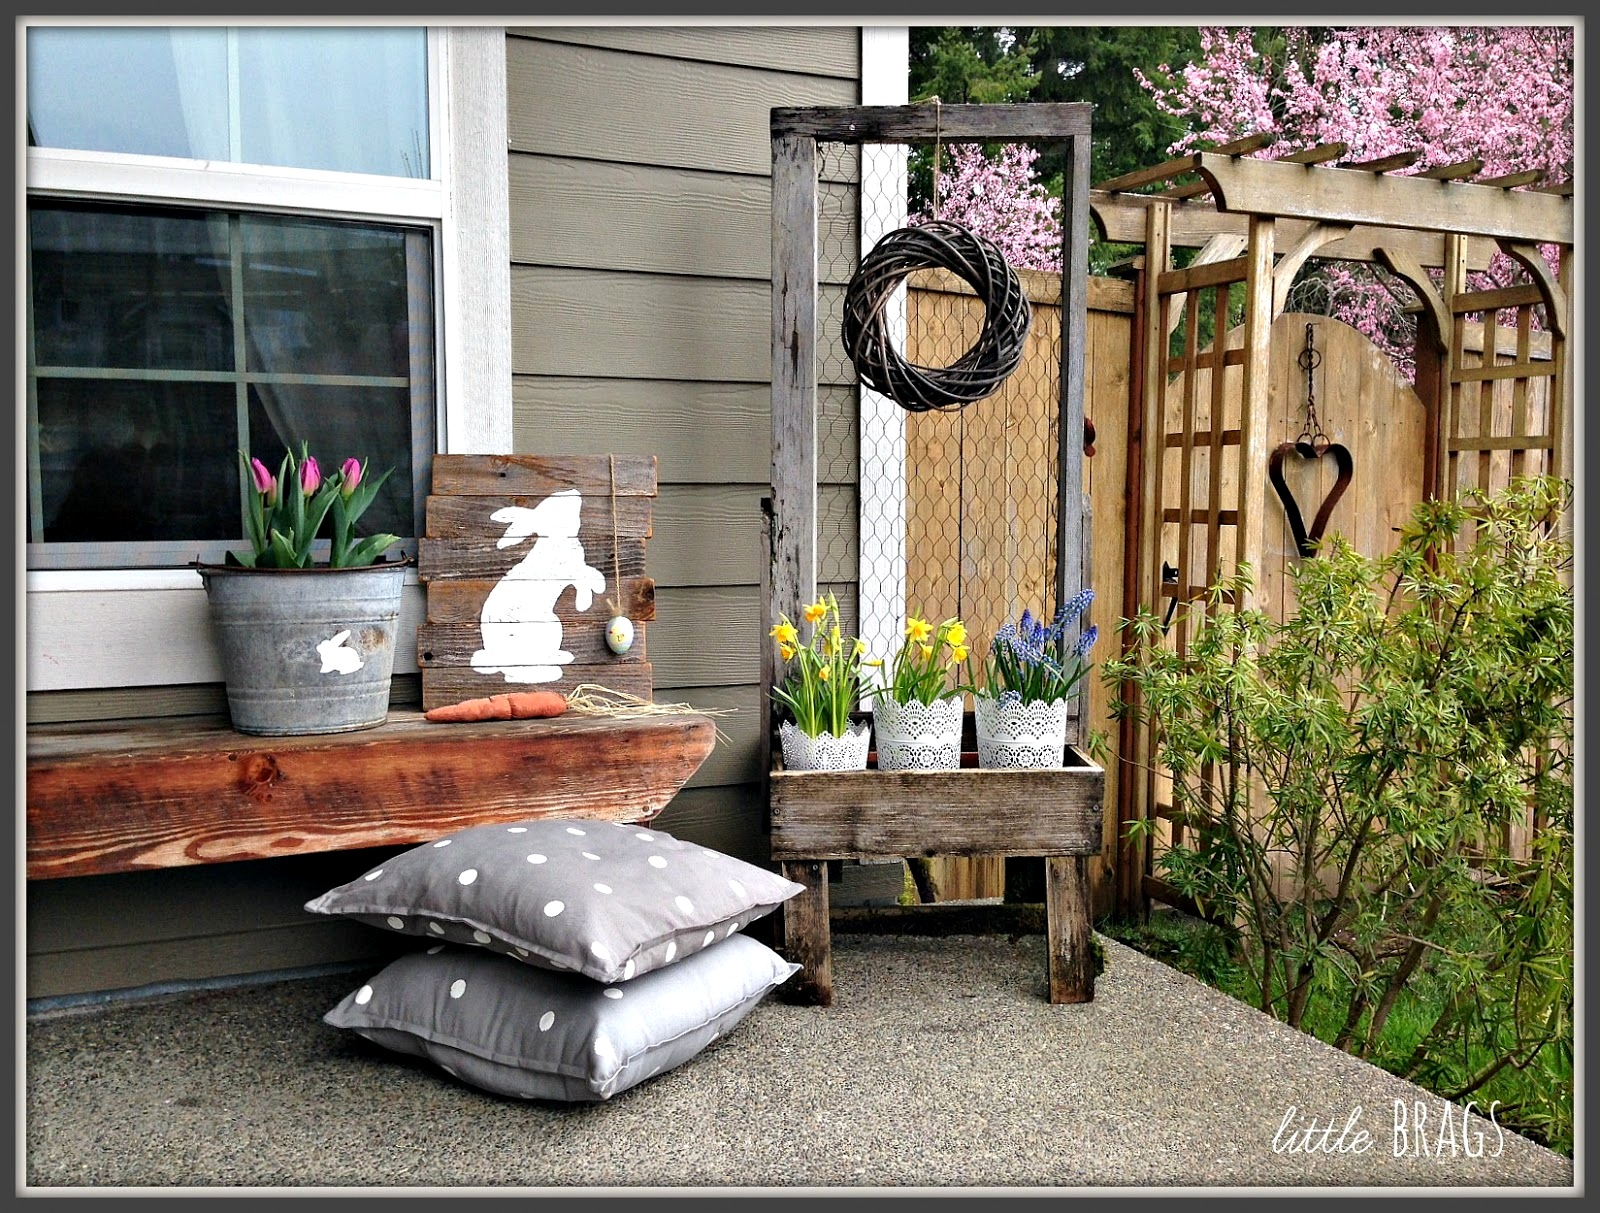 Easter spring themed porch decorating, by Little Brags, featured on Funky Junk Interiors